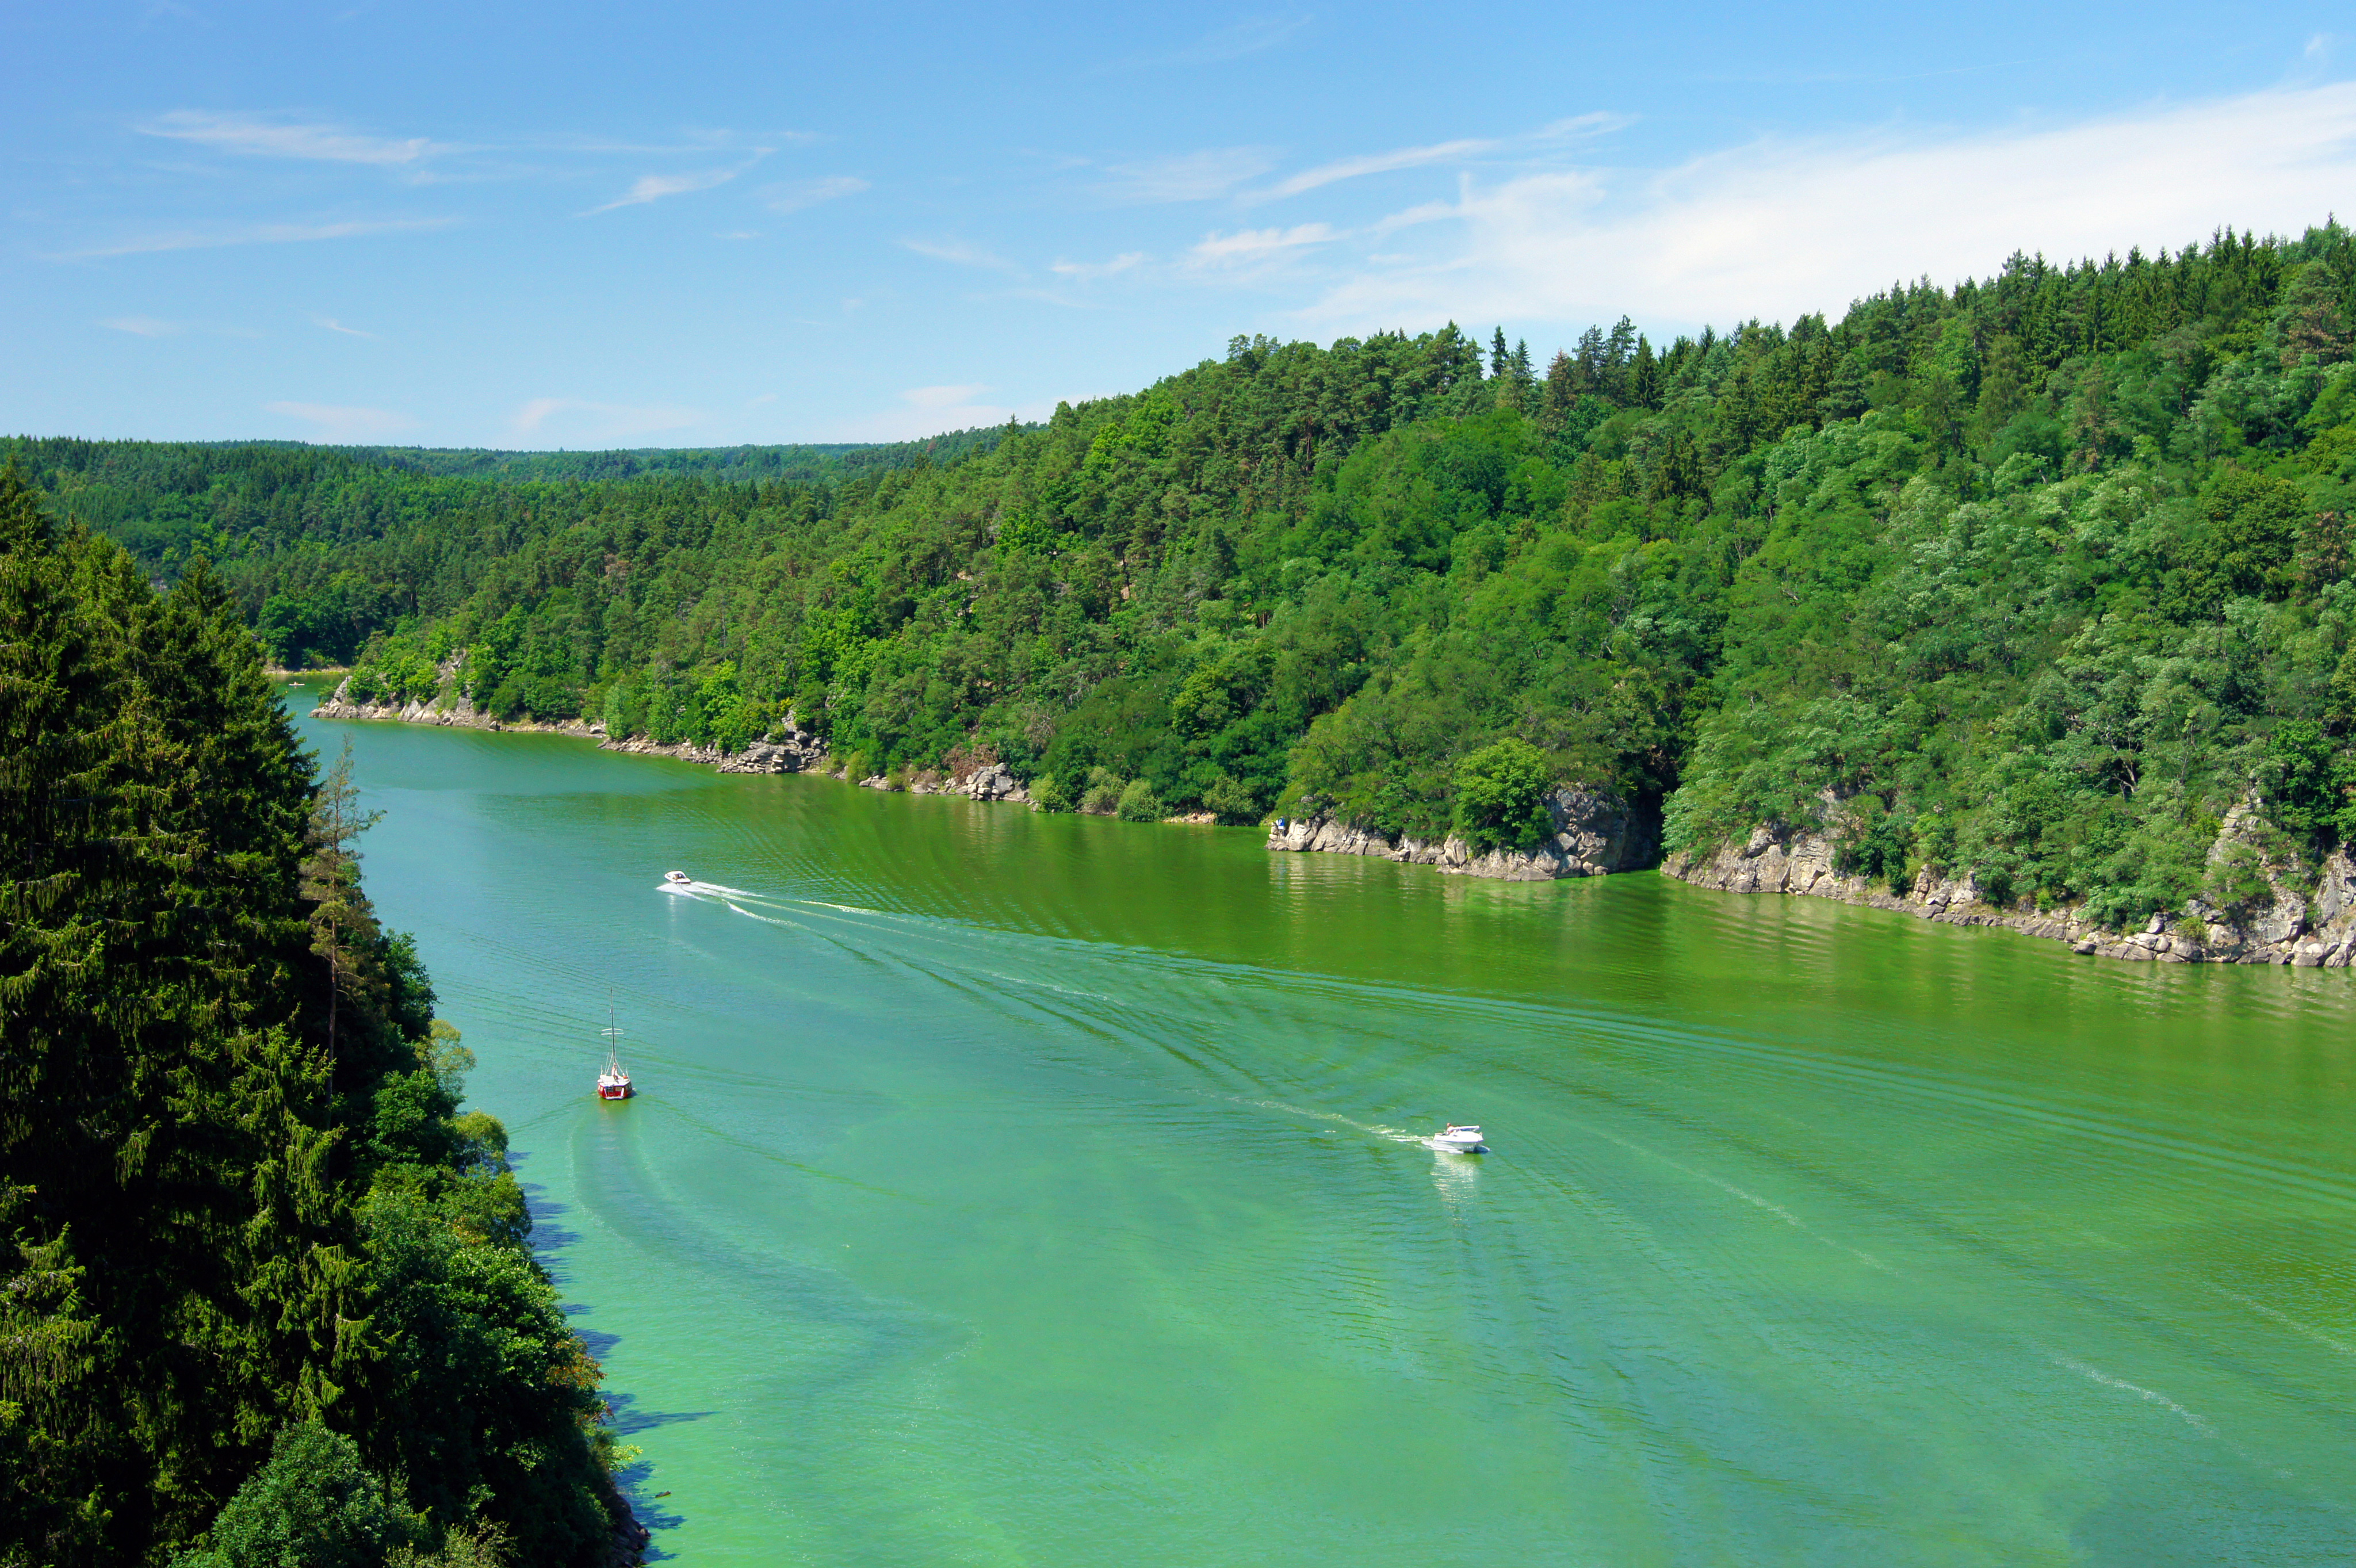 river-infested-with-blue-green-algae-shutterstock88284112